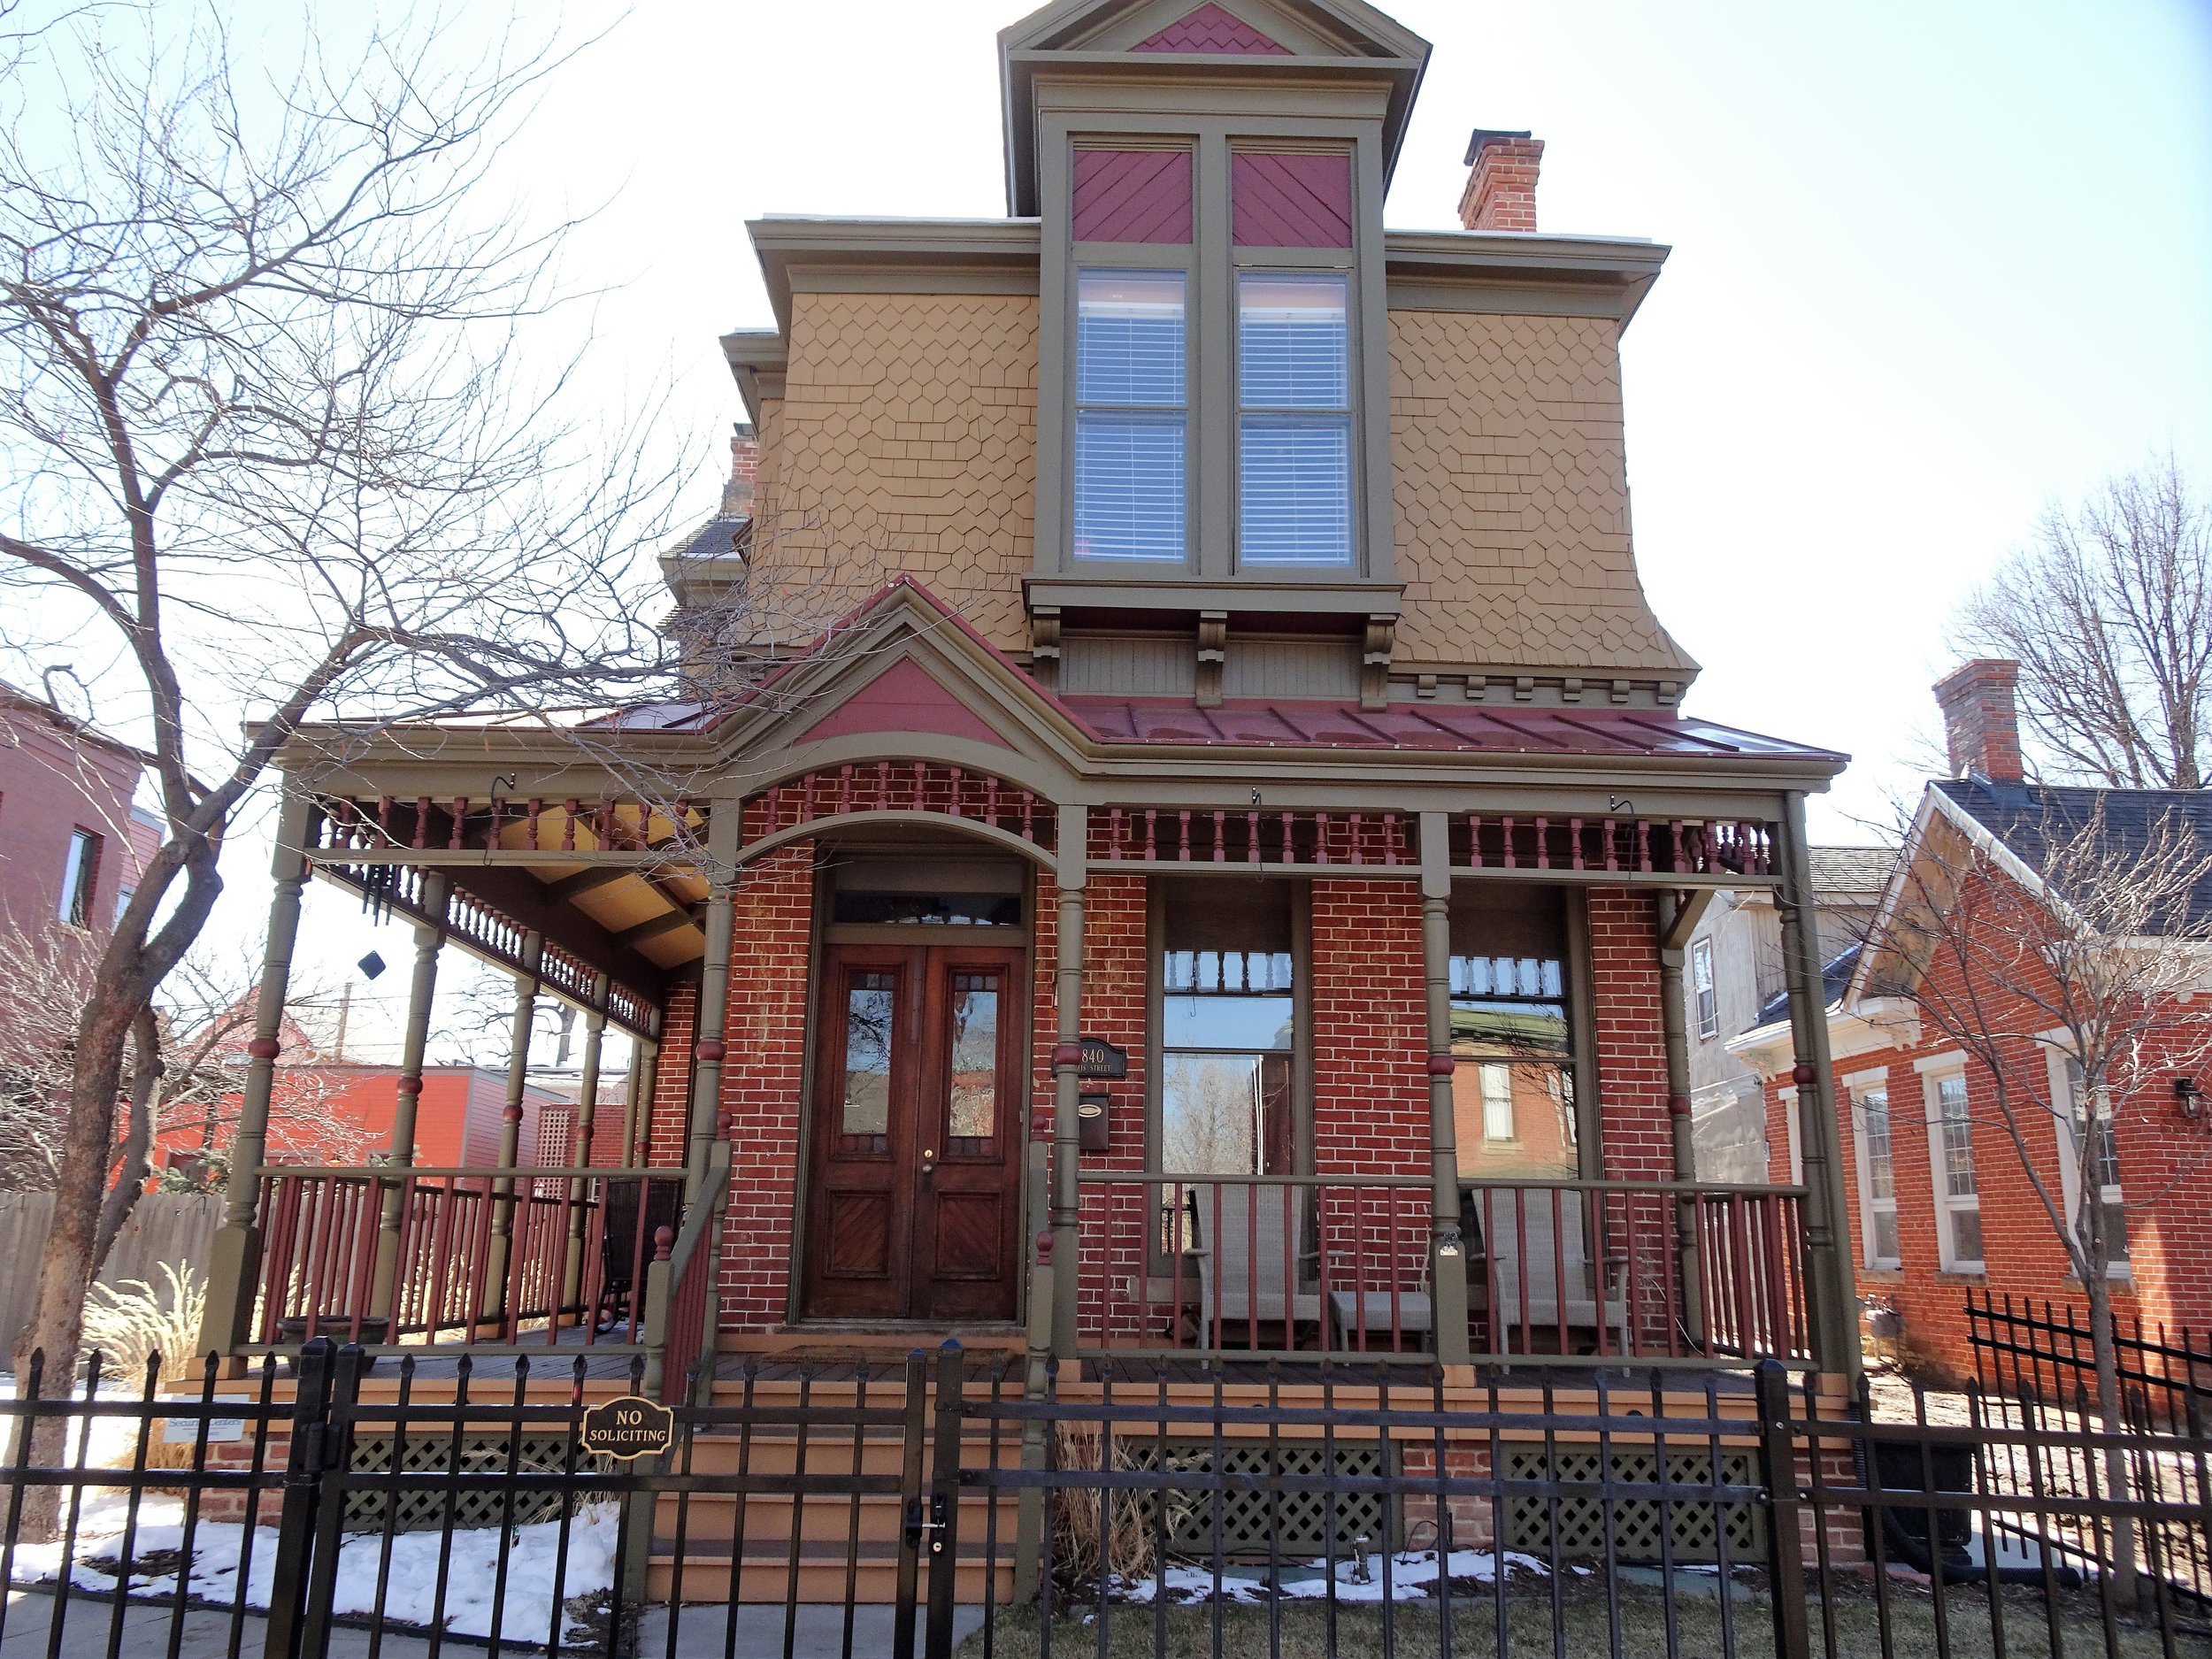 Second Empire - Beginning in the 1850s, and characterized by its distinctive mansard roof, and also typically hooded windows and a wide roof cornice.